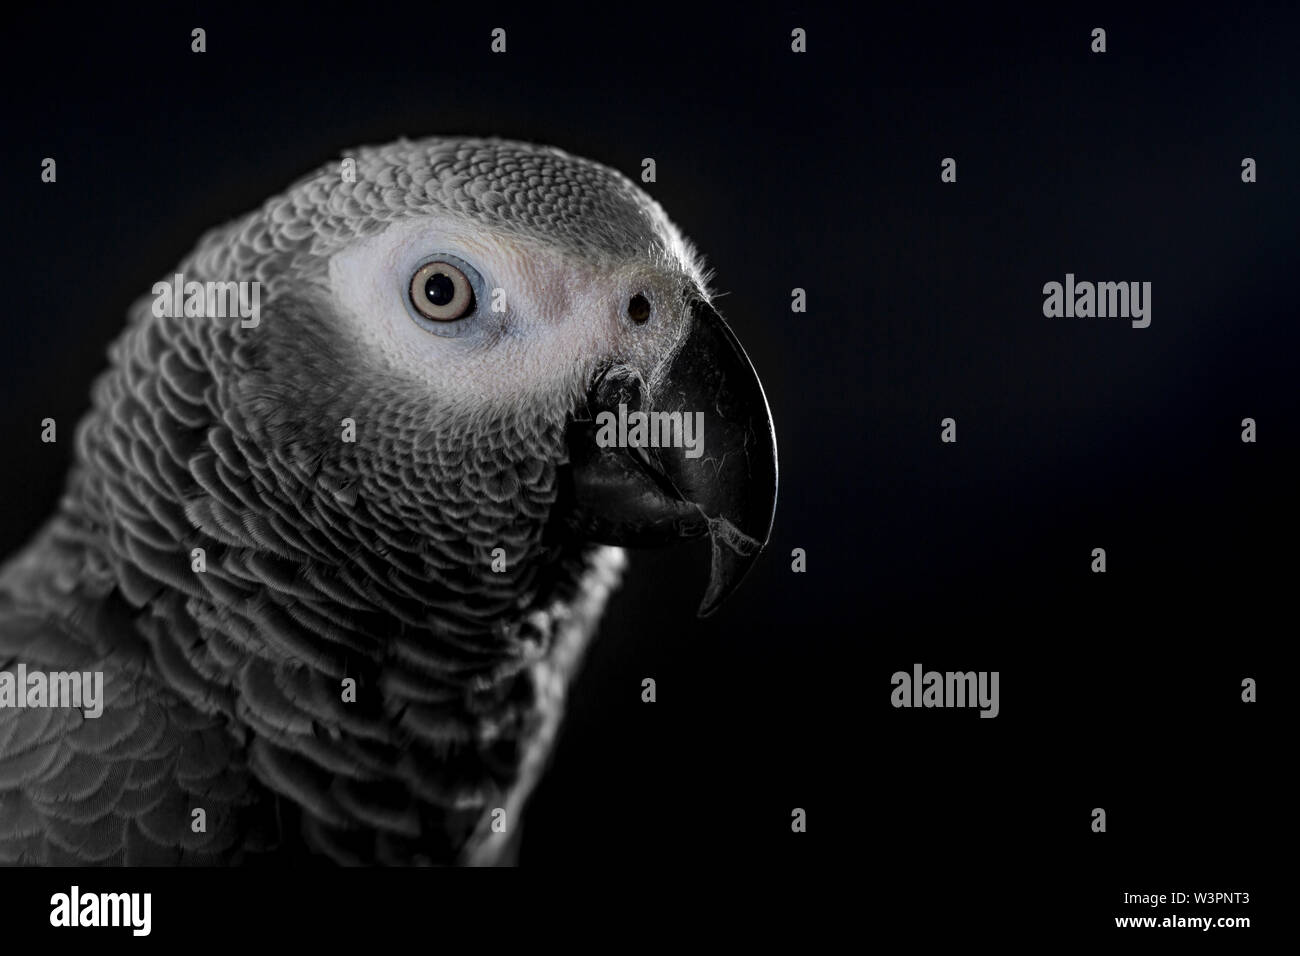 Close up African grey parrot (Psittacus erithacus) head portrait during concentrating on speak by clever repeating talk. Face of intelligent-like bird - Stock Image